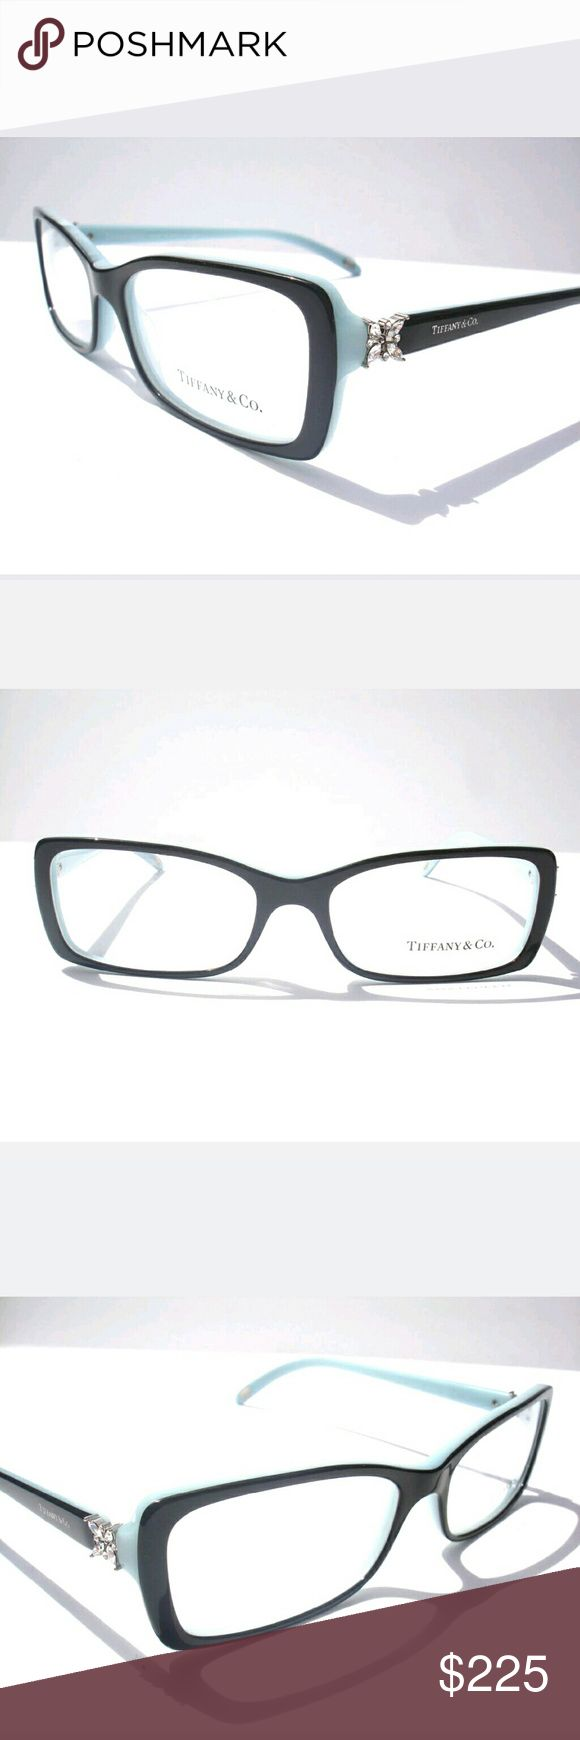 Tiffany and Co Eyeglasses New and authentic Tiffany and Co ...